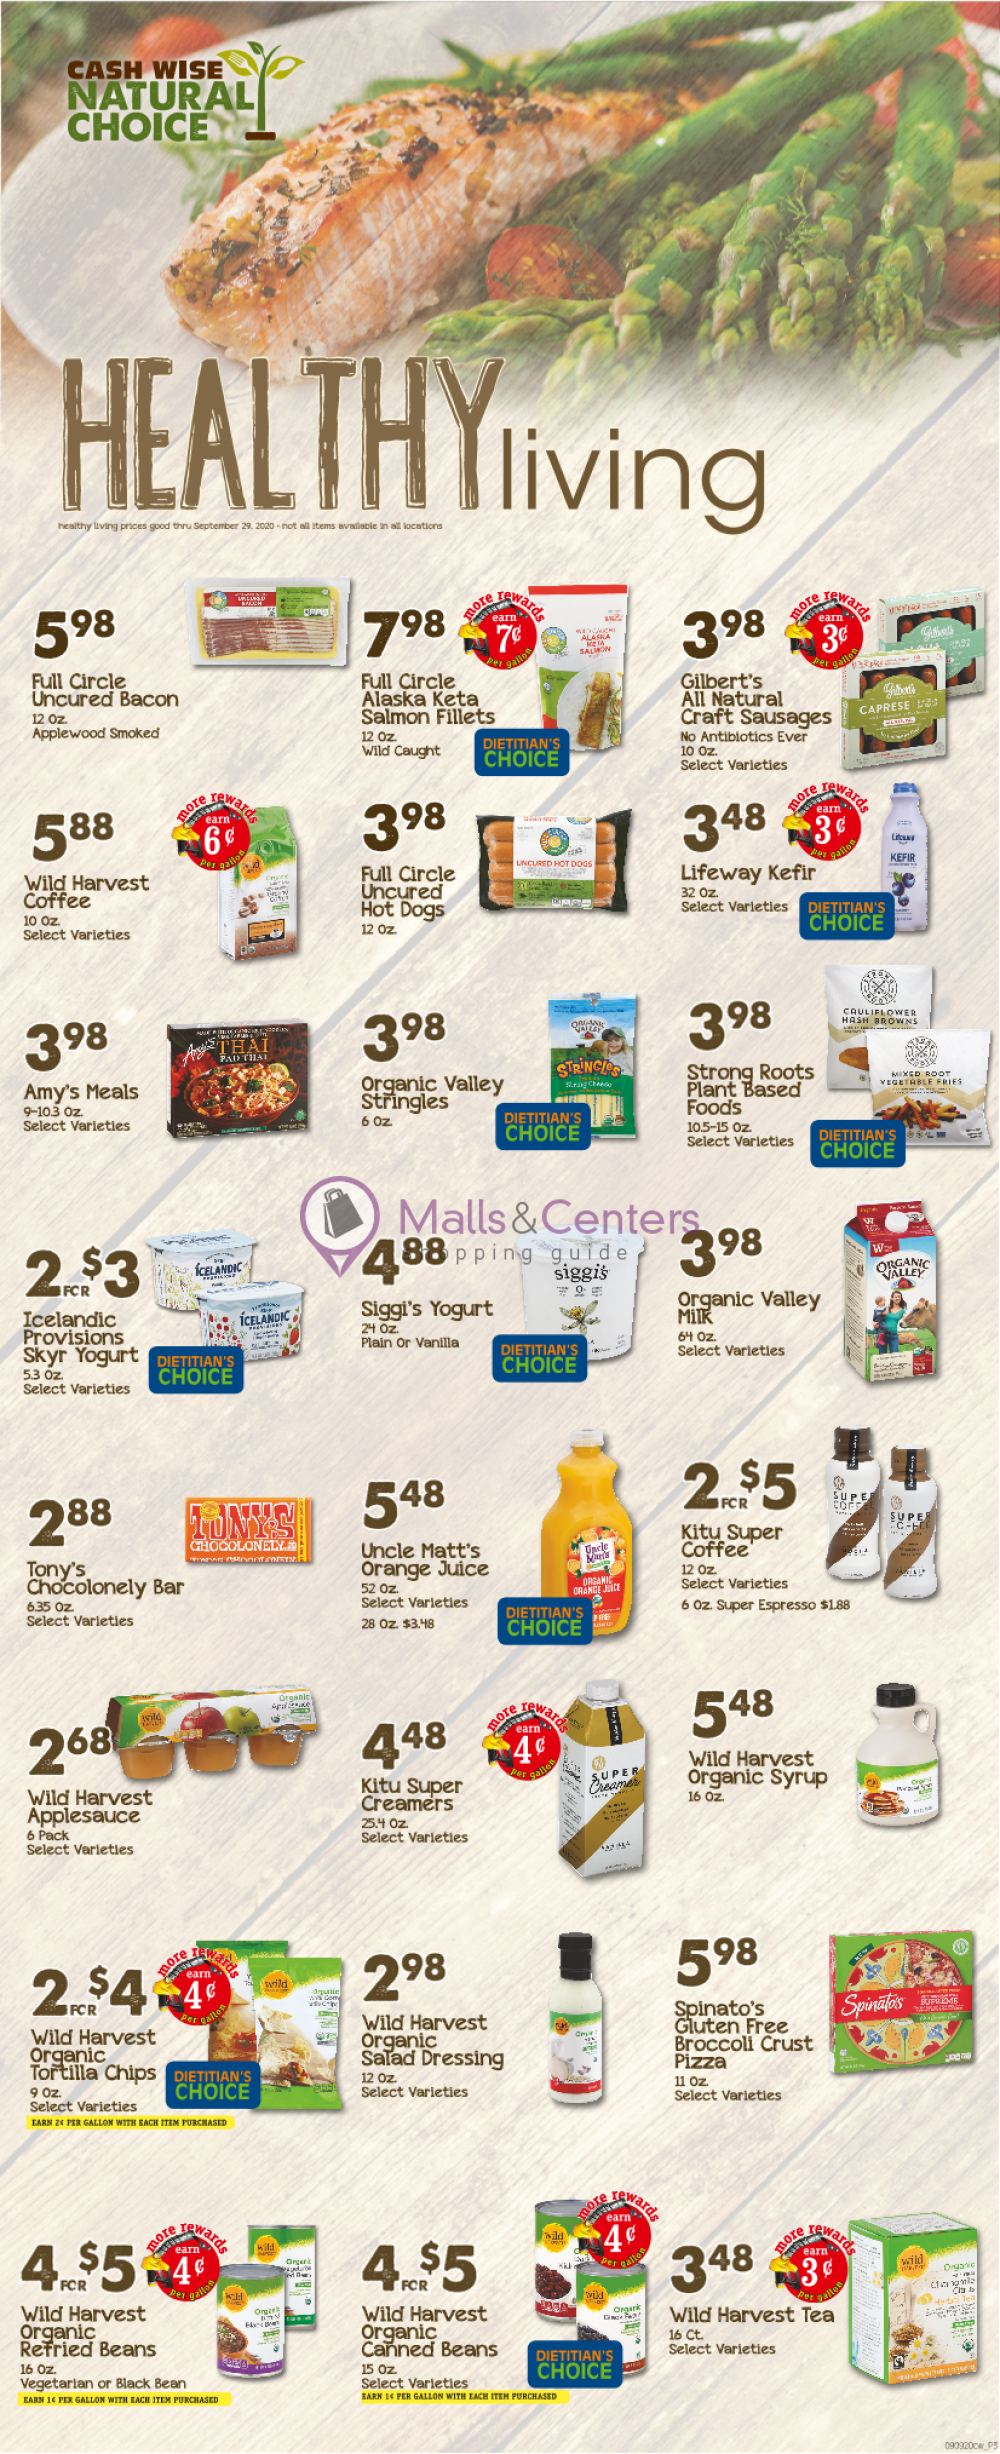 weekly ads Cash Wise - page 1 - mallscenters.com